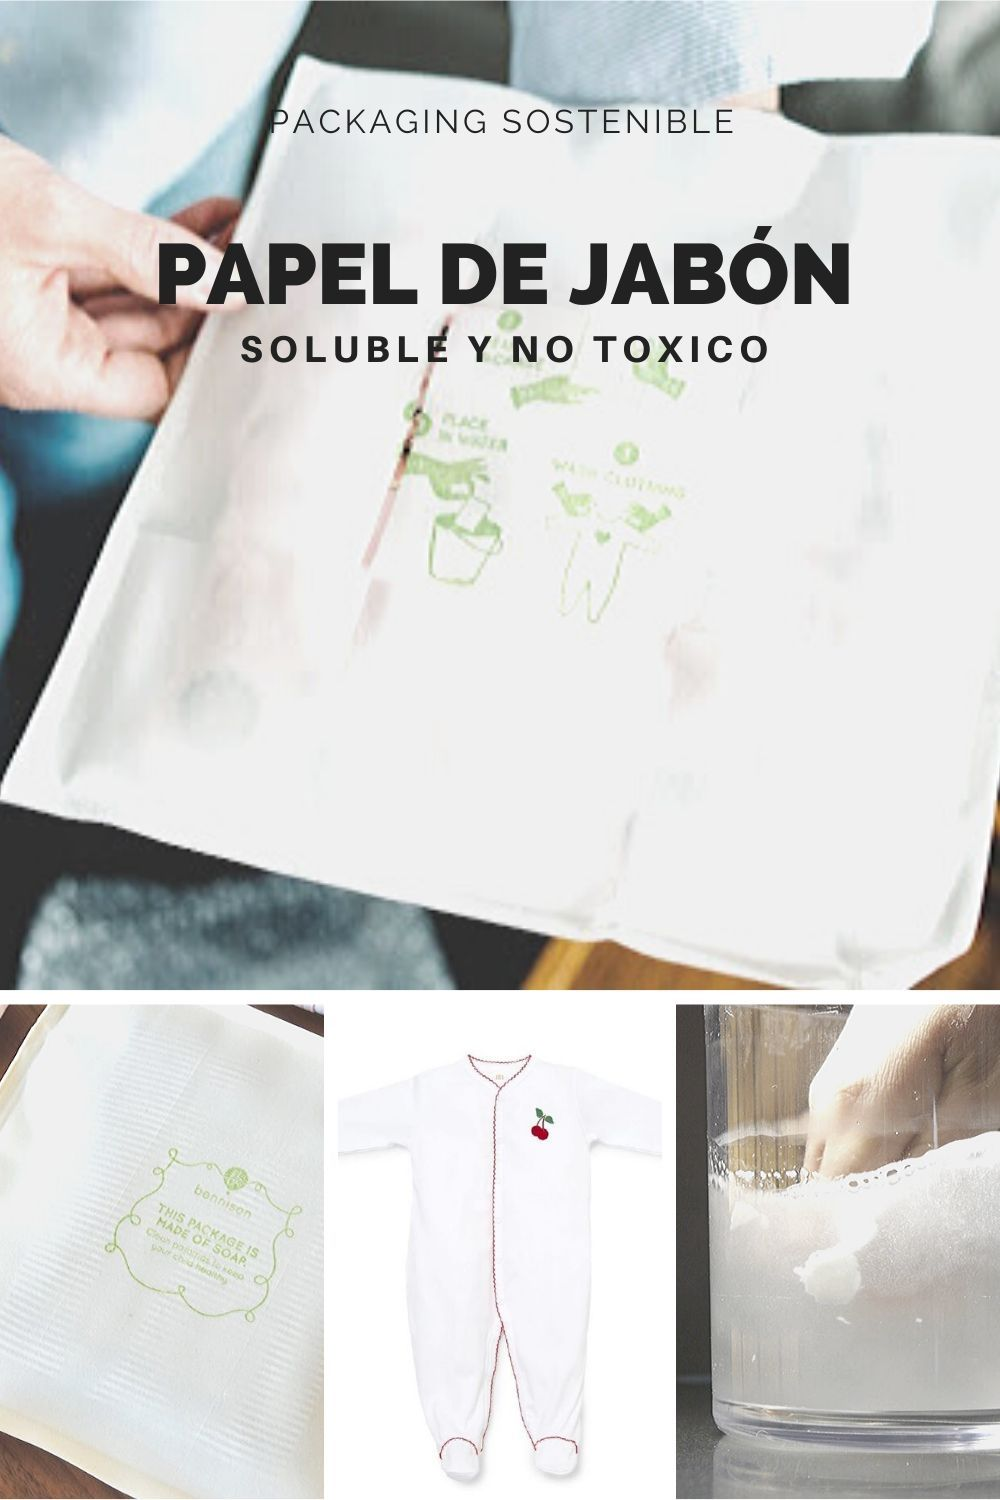 Packaging sostenible hecho de papel con jabón biodegradable